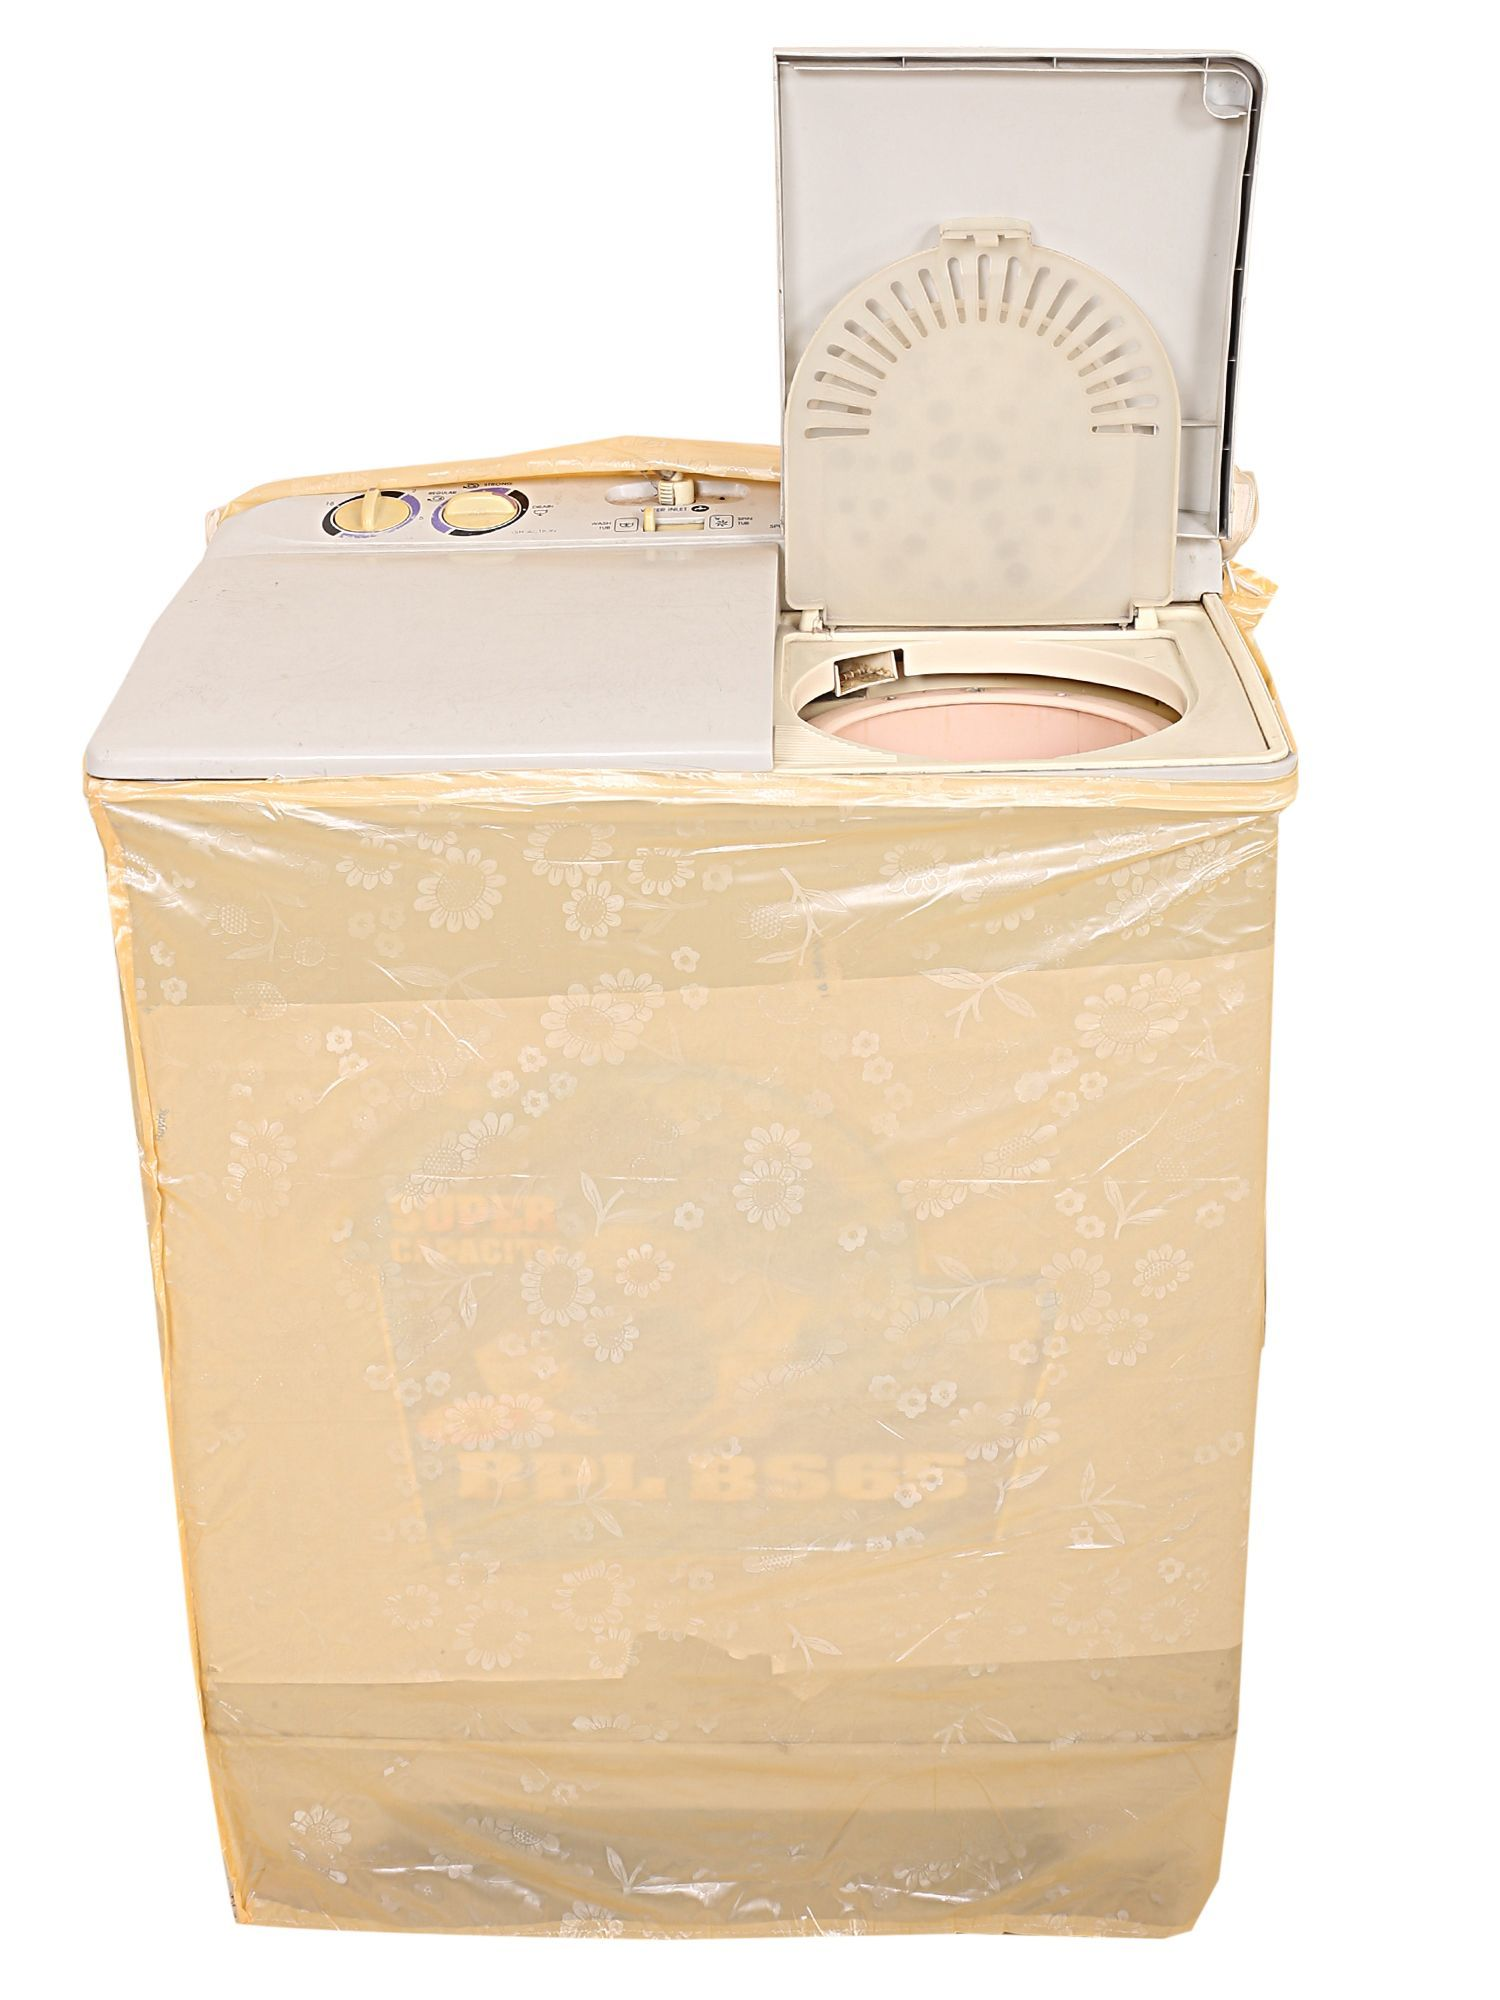 Kuber Industries Top Load Semi Automatic Washing Machine Cover (Peach)